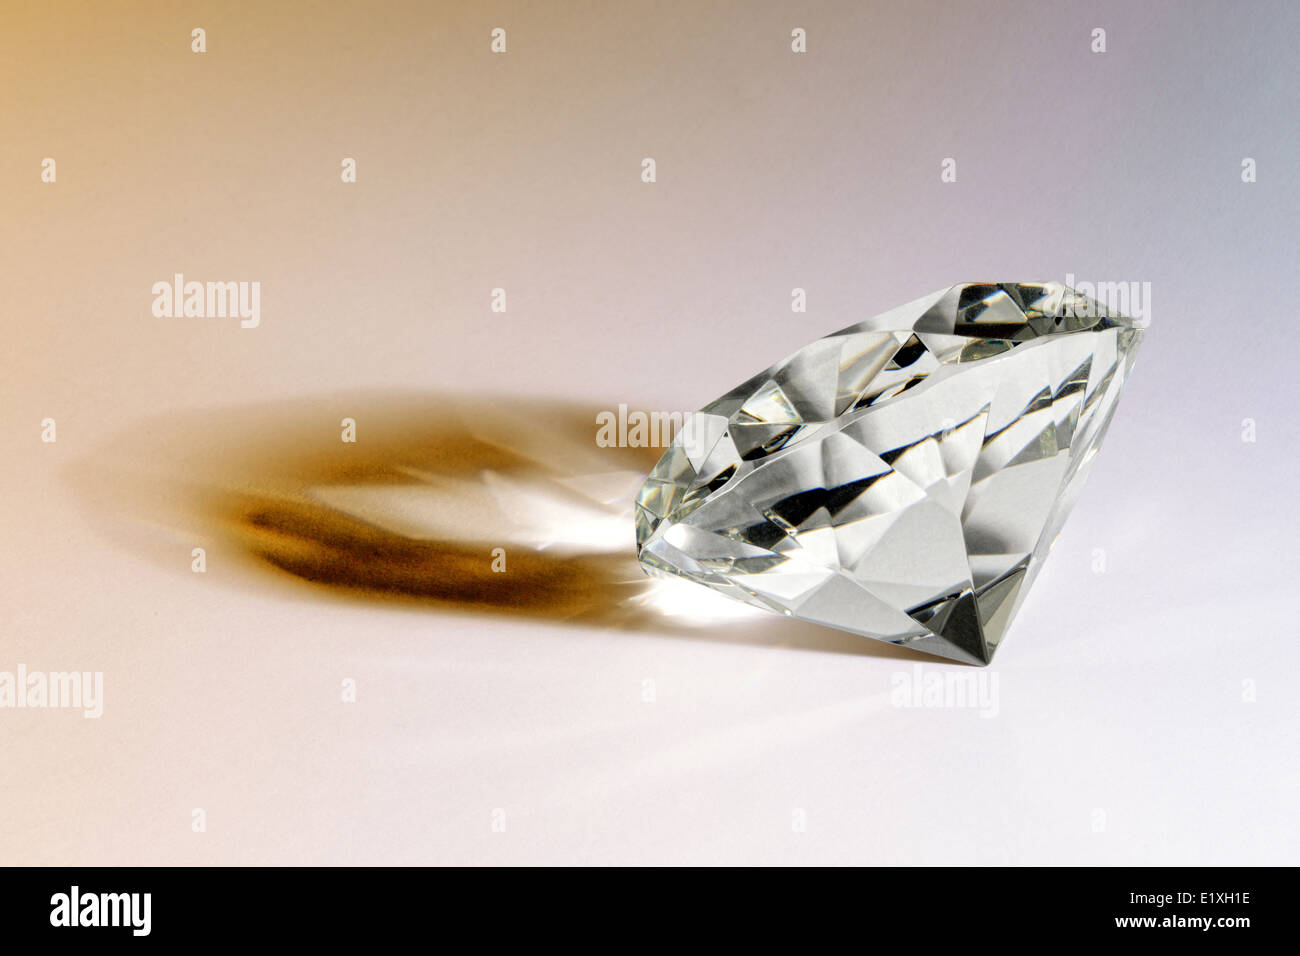 Faceted diamond lying - Stock Image